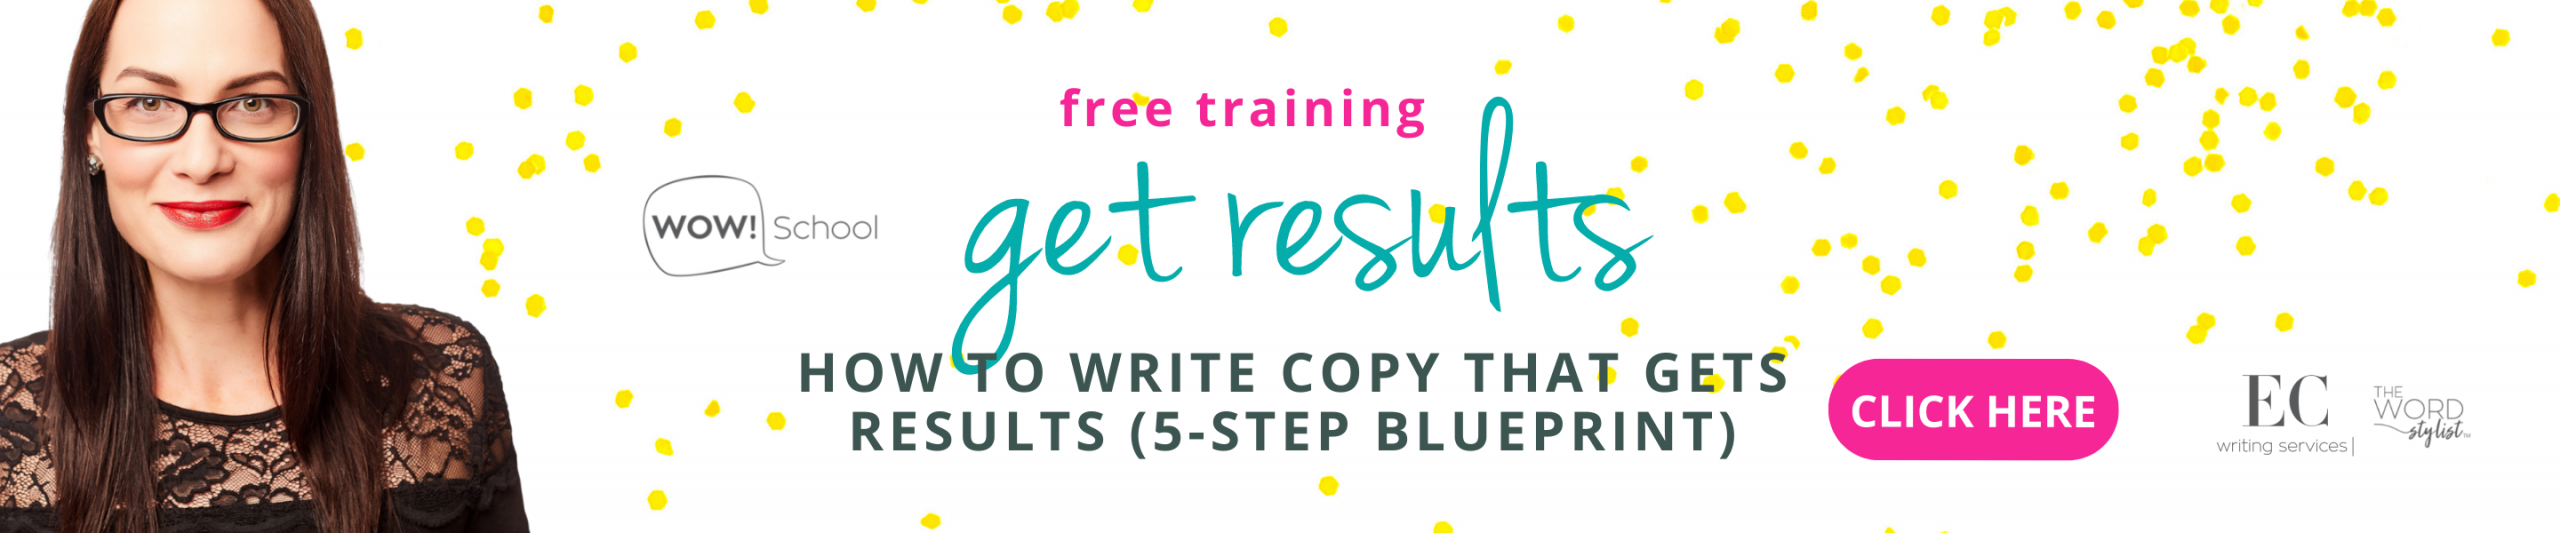 Webinar Get Results - How to write copy that gets results - Elizabeth Campbell Wow School Global and EC Writing Services